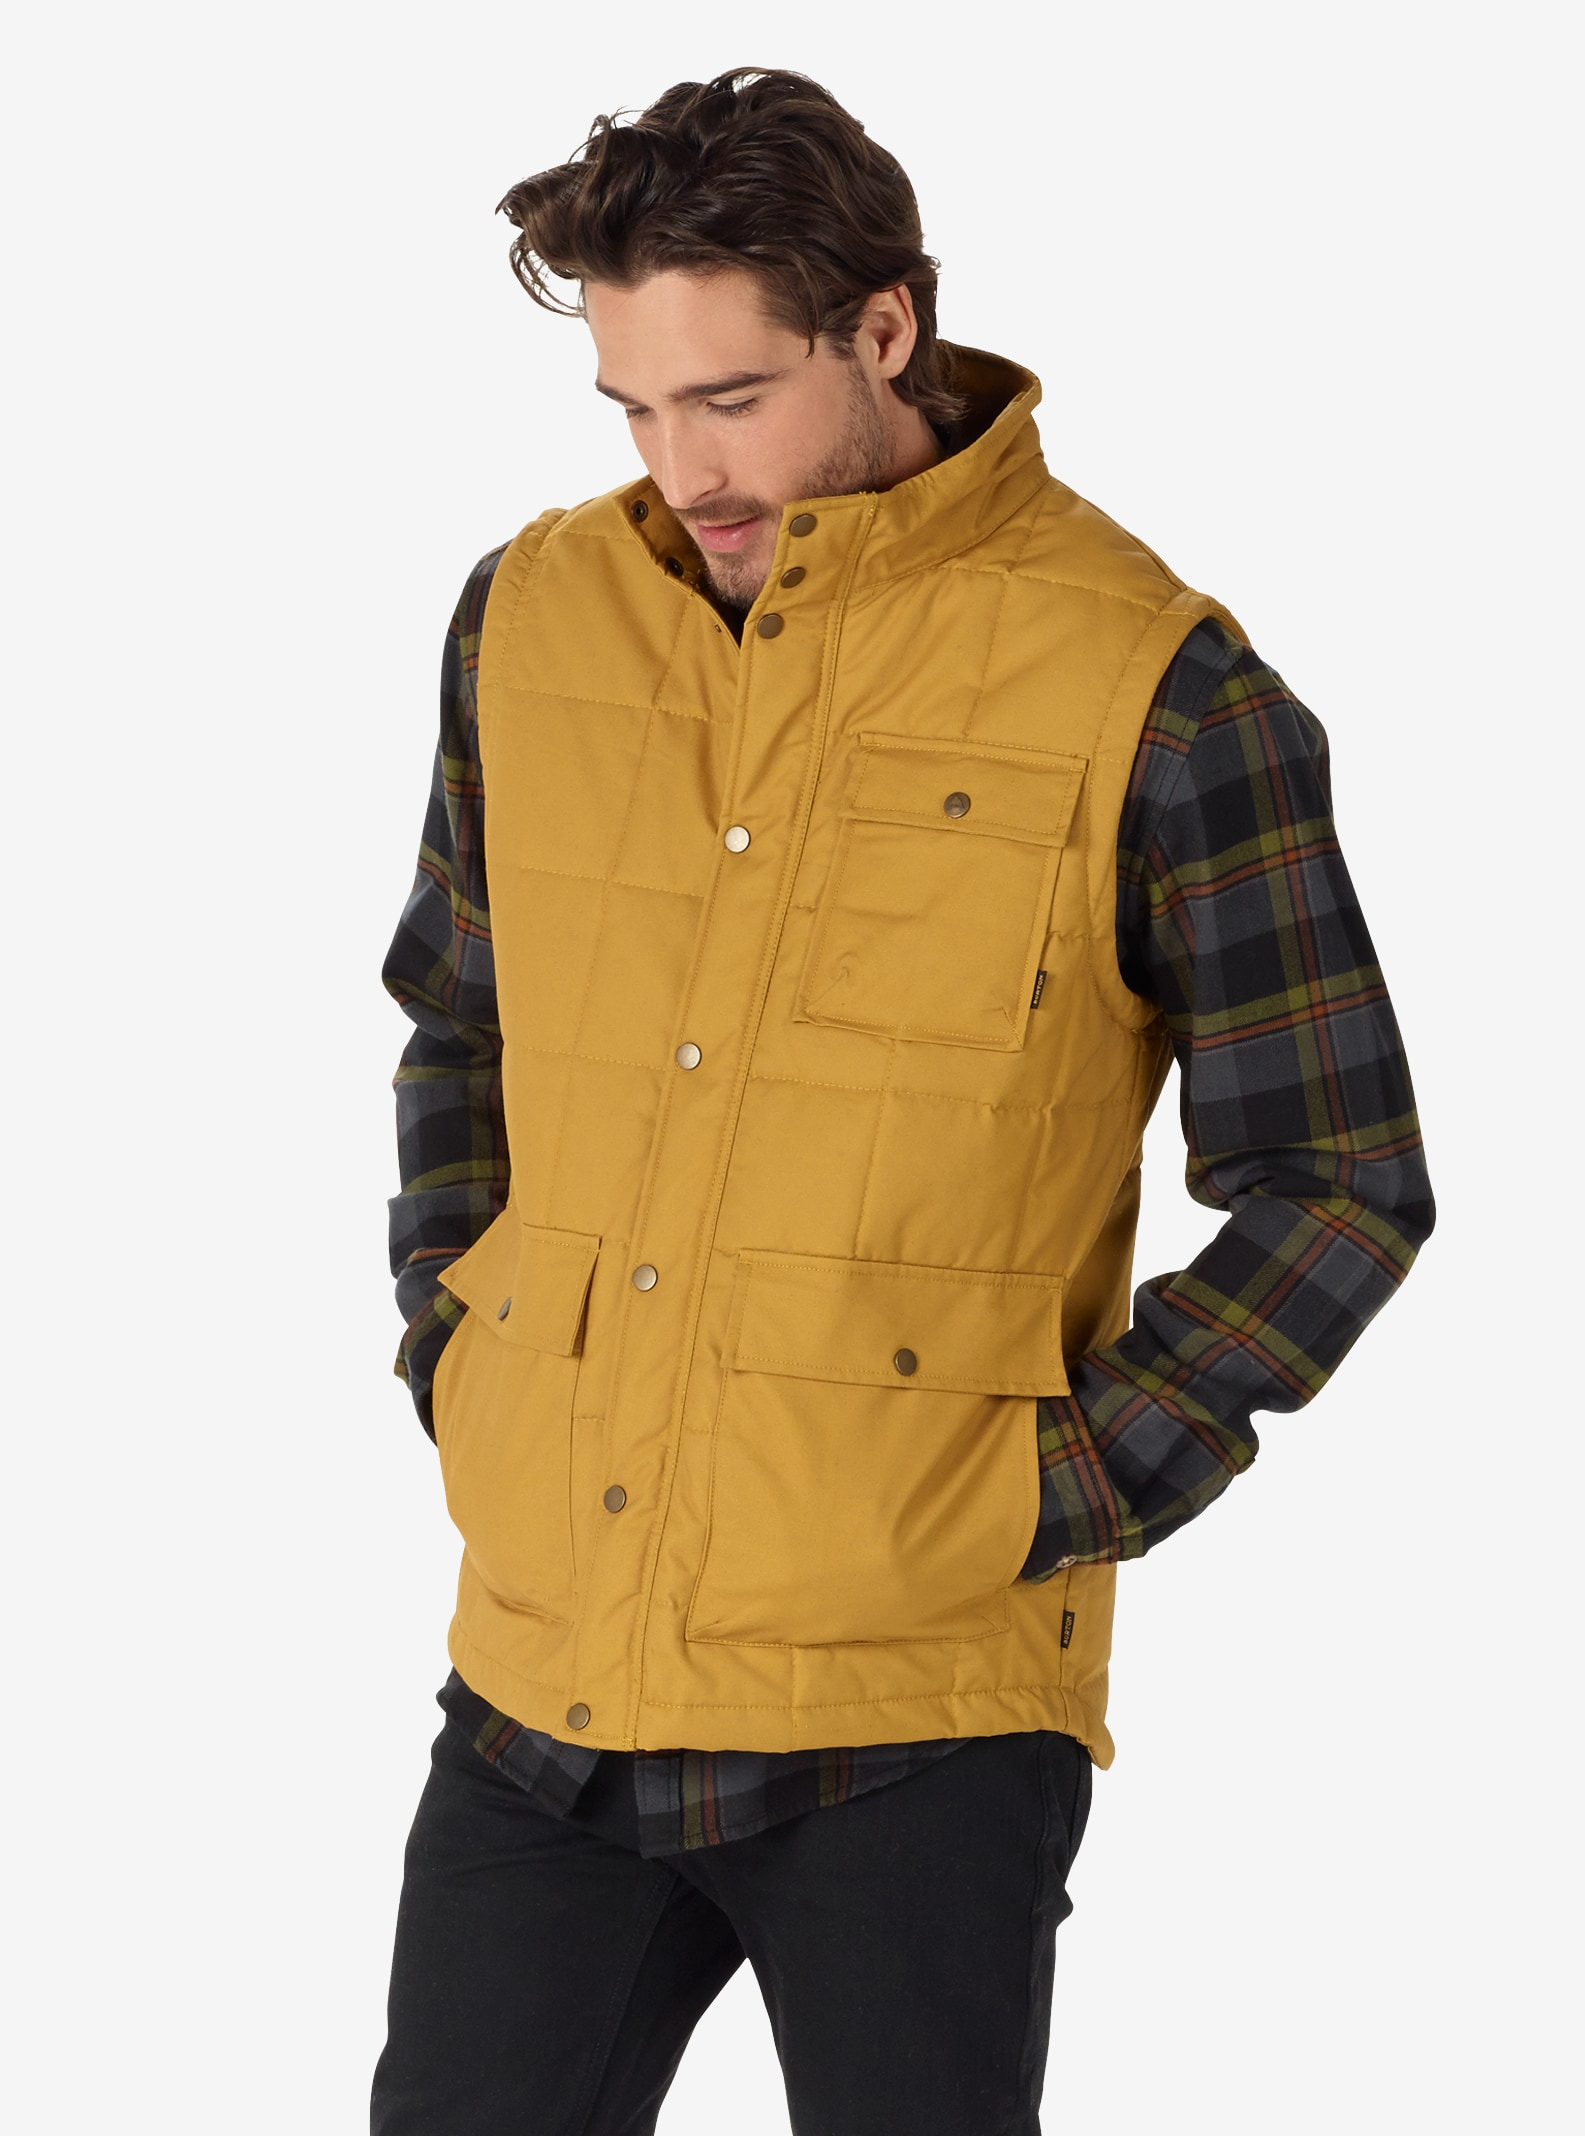 Men's Burton Woodford Vest shown in Harvest Gold